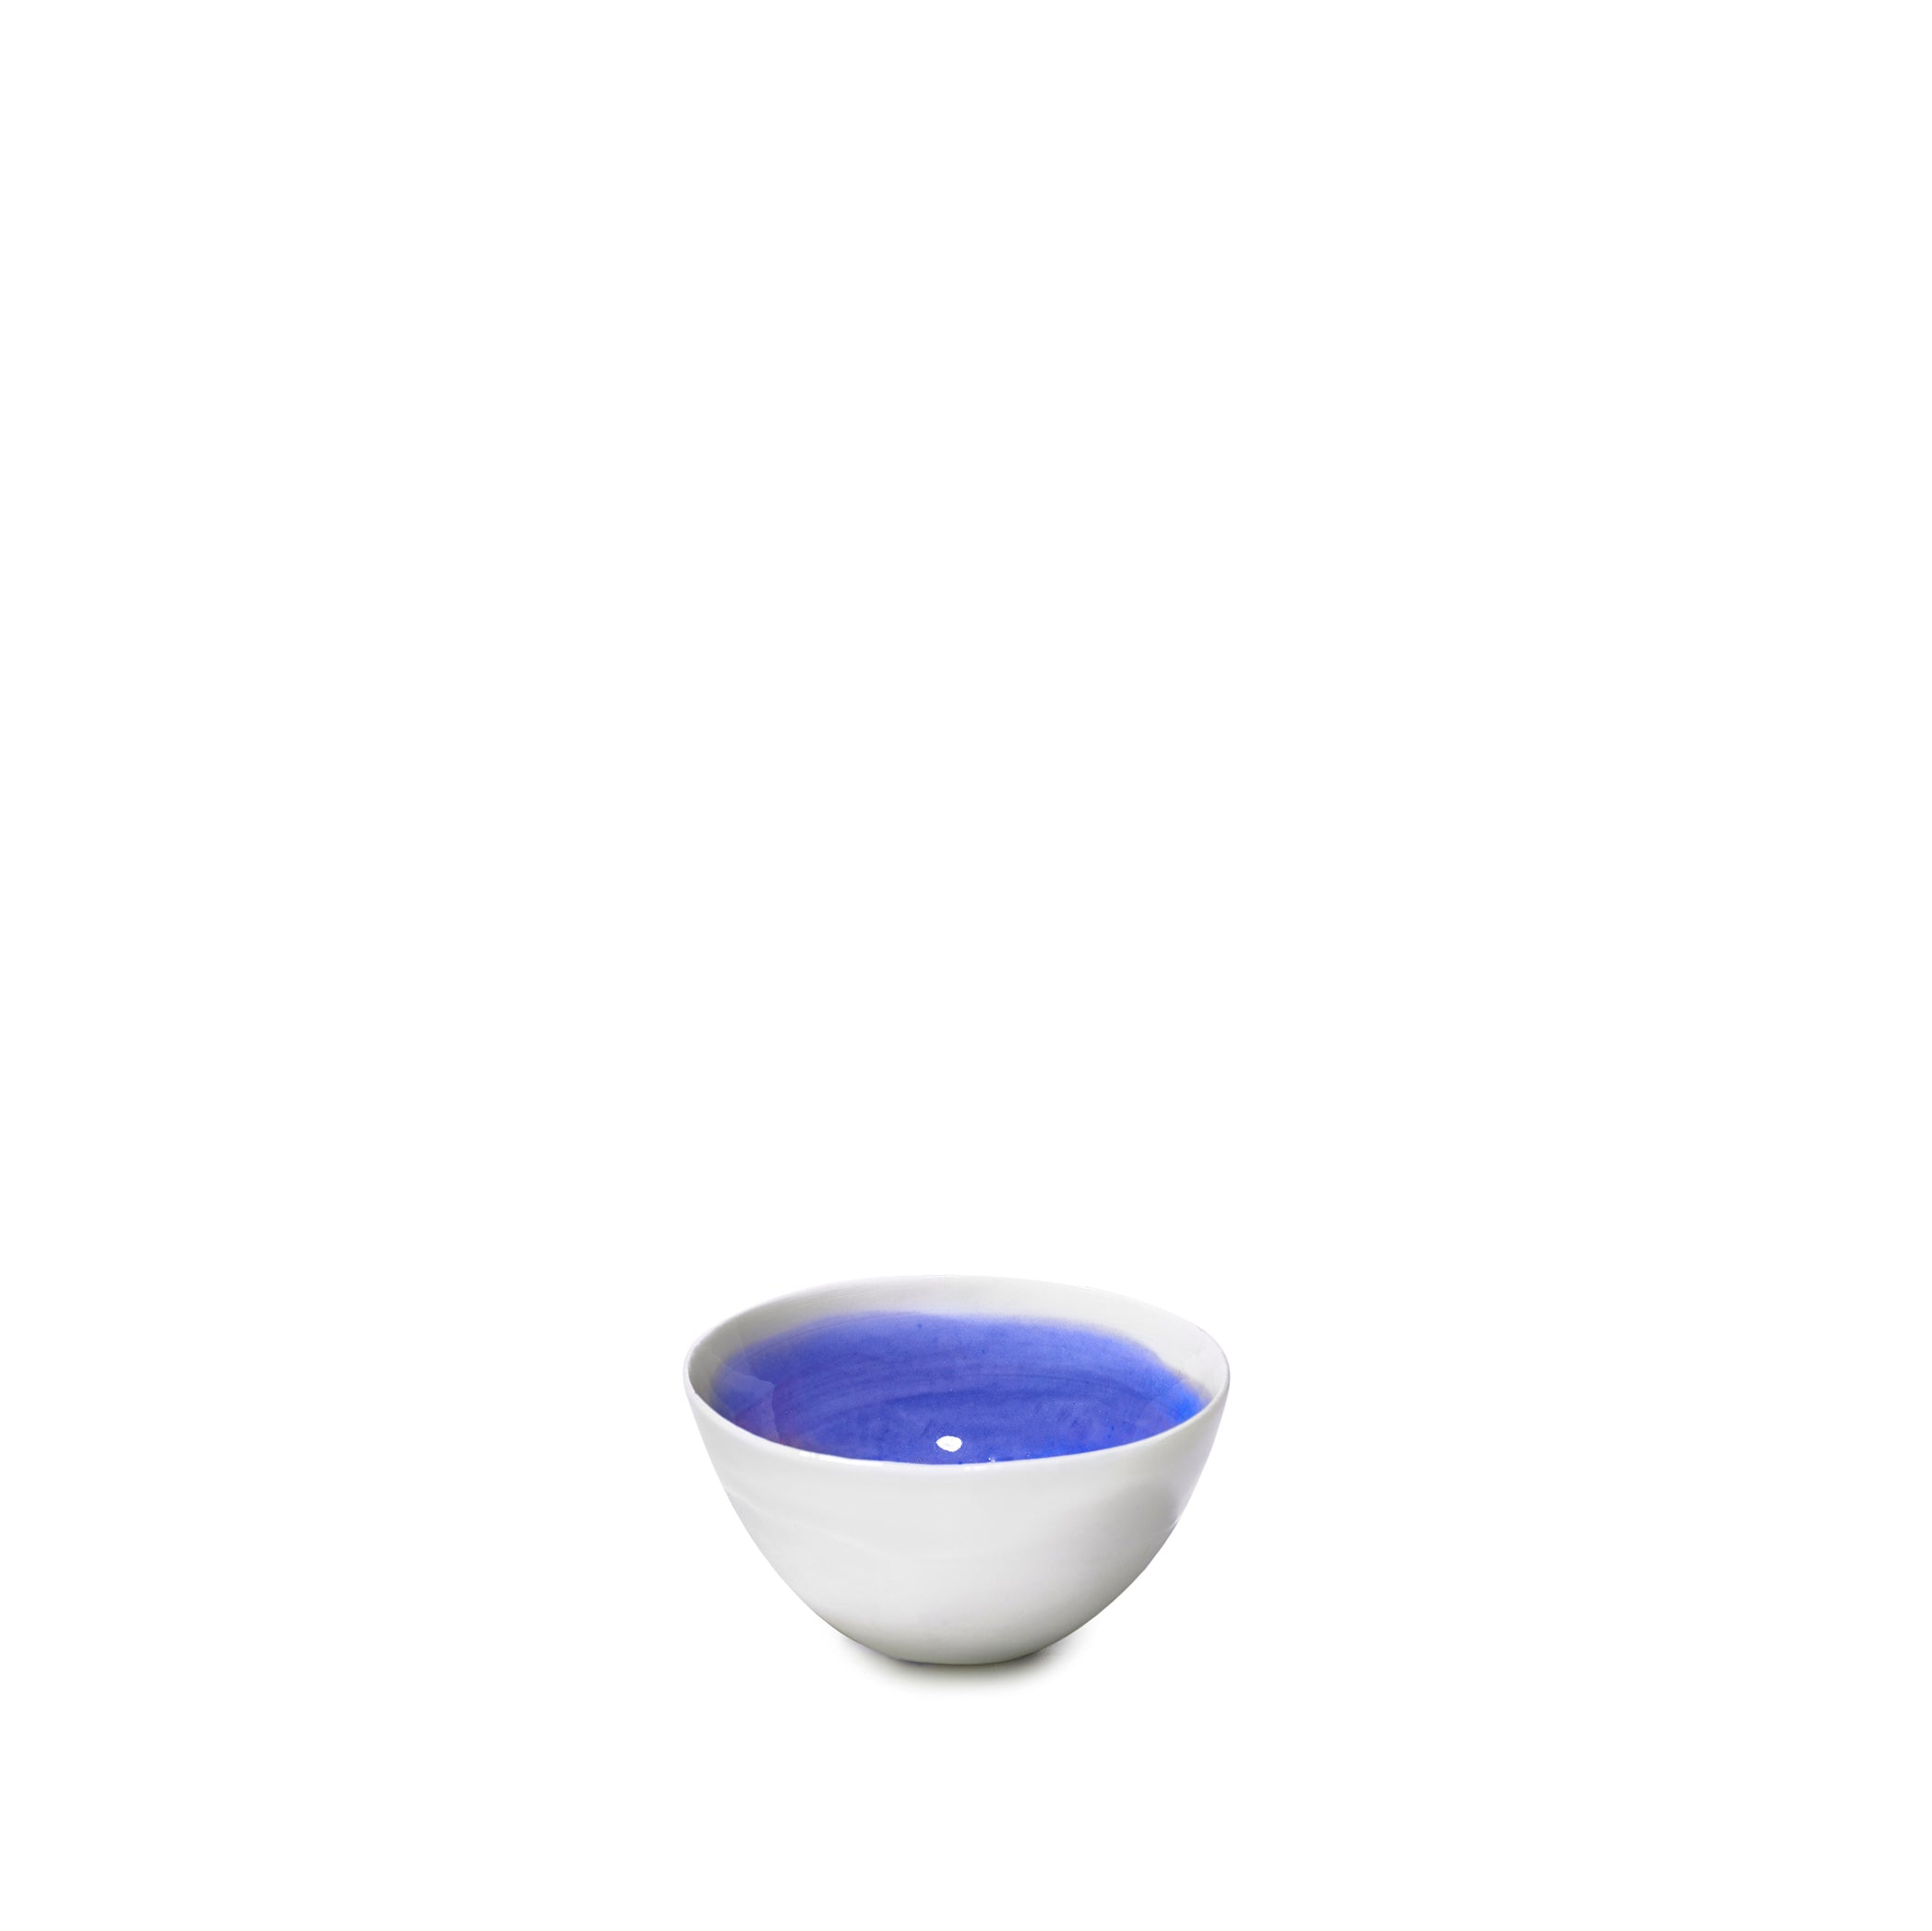 Small Dark Blue Ceramic Bowl with White Edge, 8cm